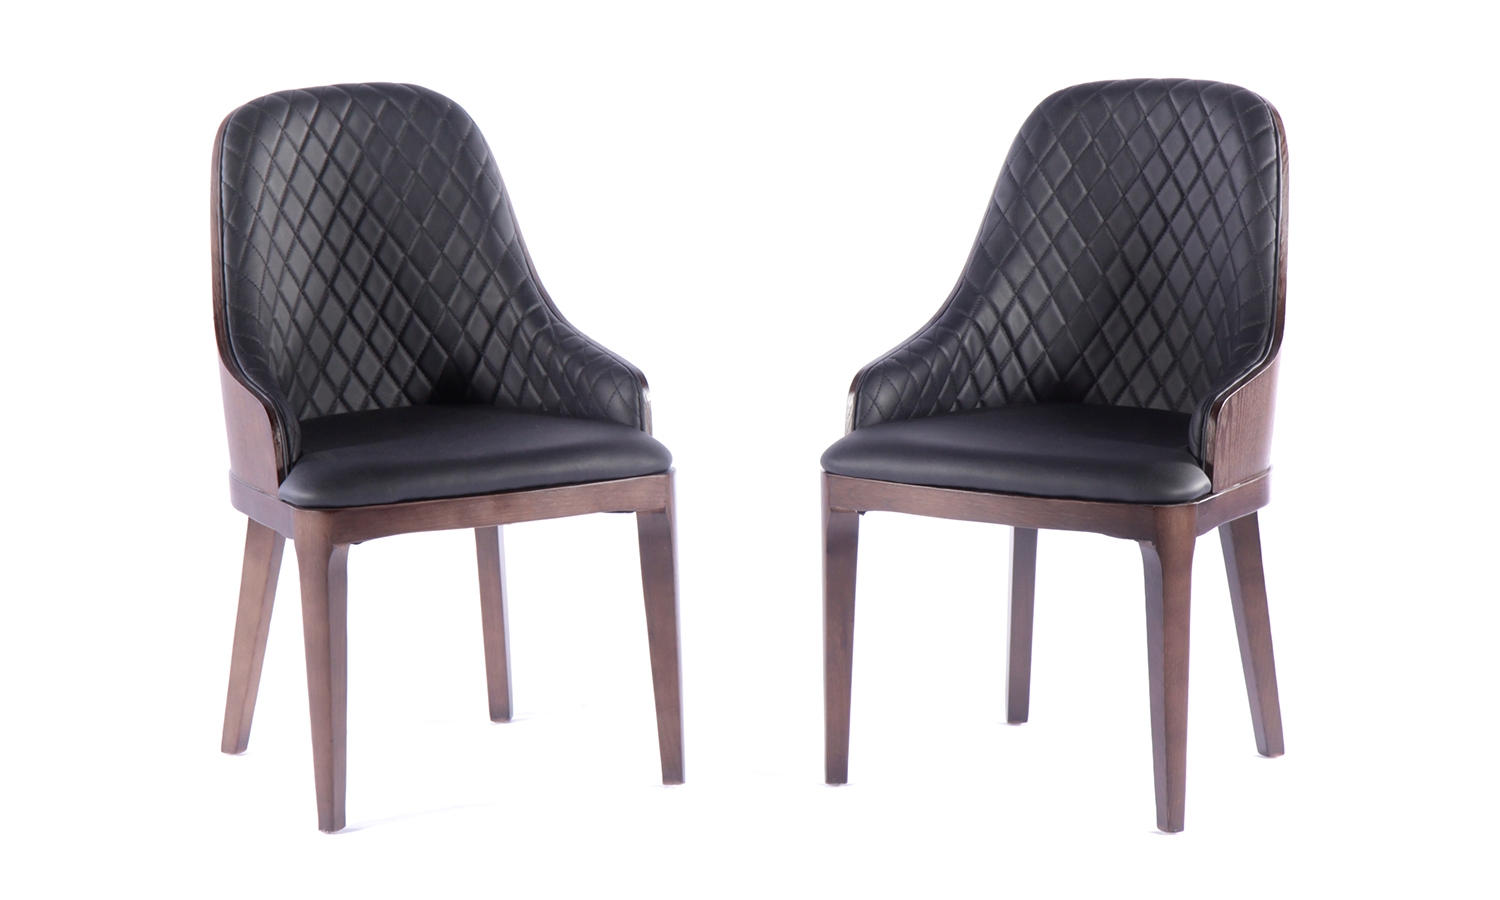 Urban Deco Madrid Black Faux Leather Dining Chair (Pair)